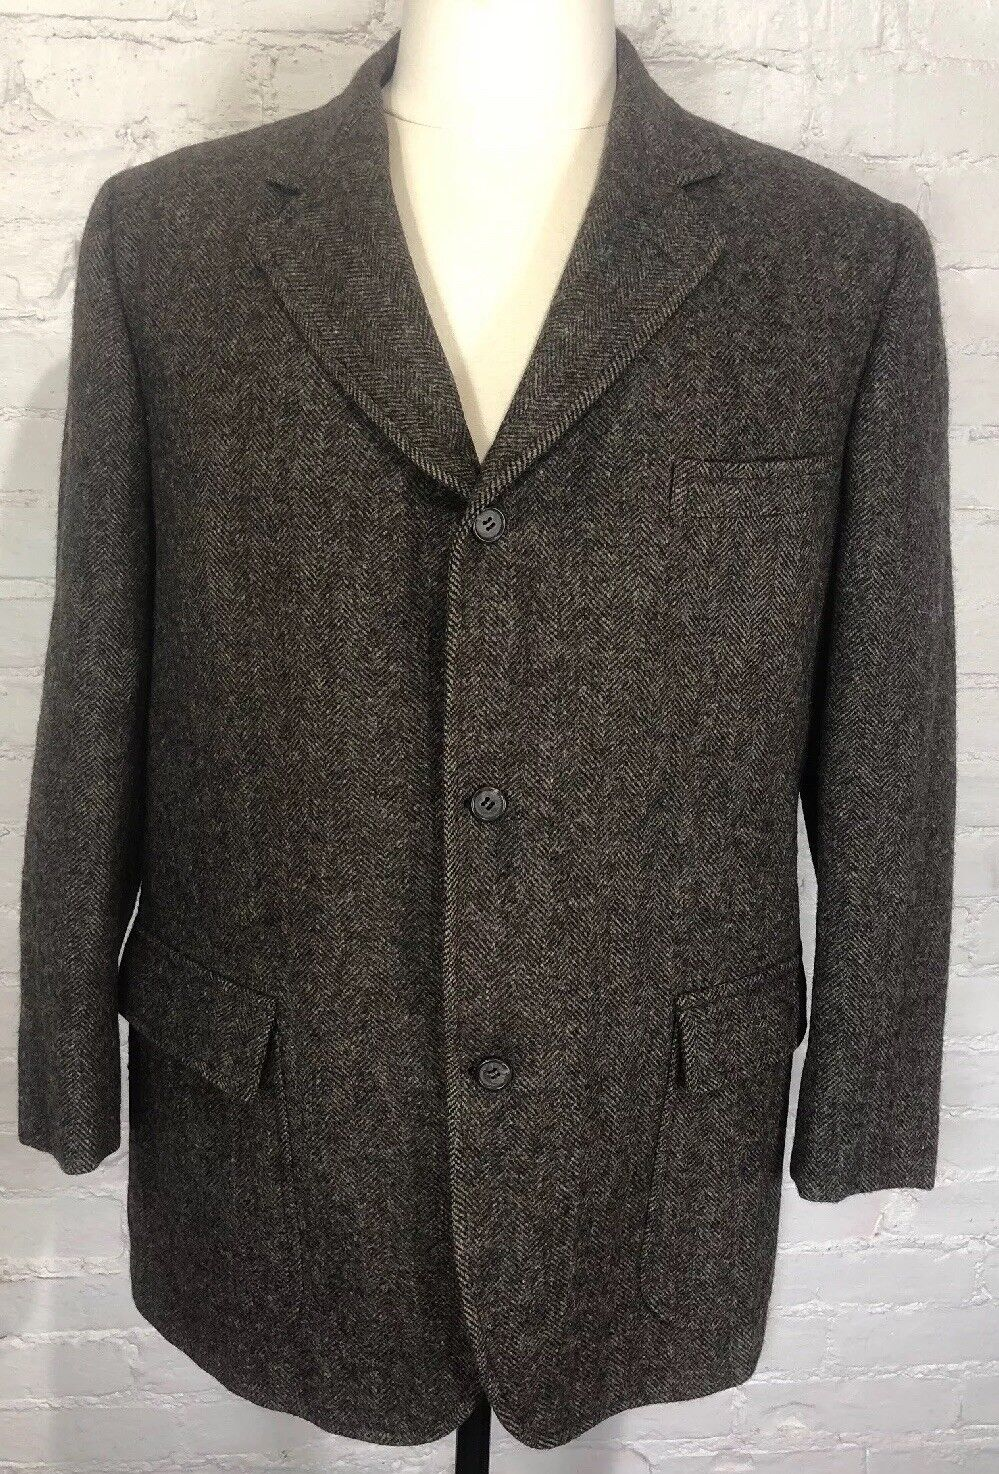 BROOKS BROTHERS Makers Blazer 43R Braun Tweed Sport Coat Wool Herringbone